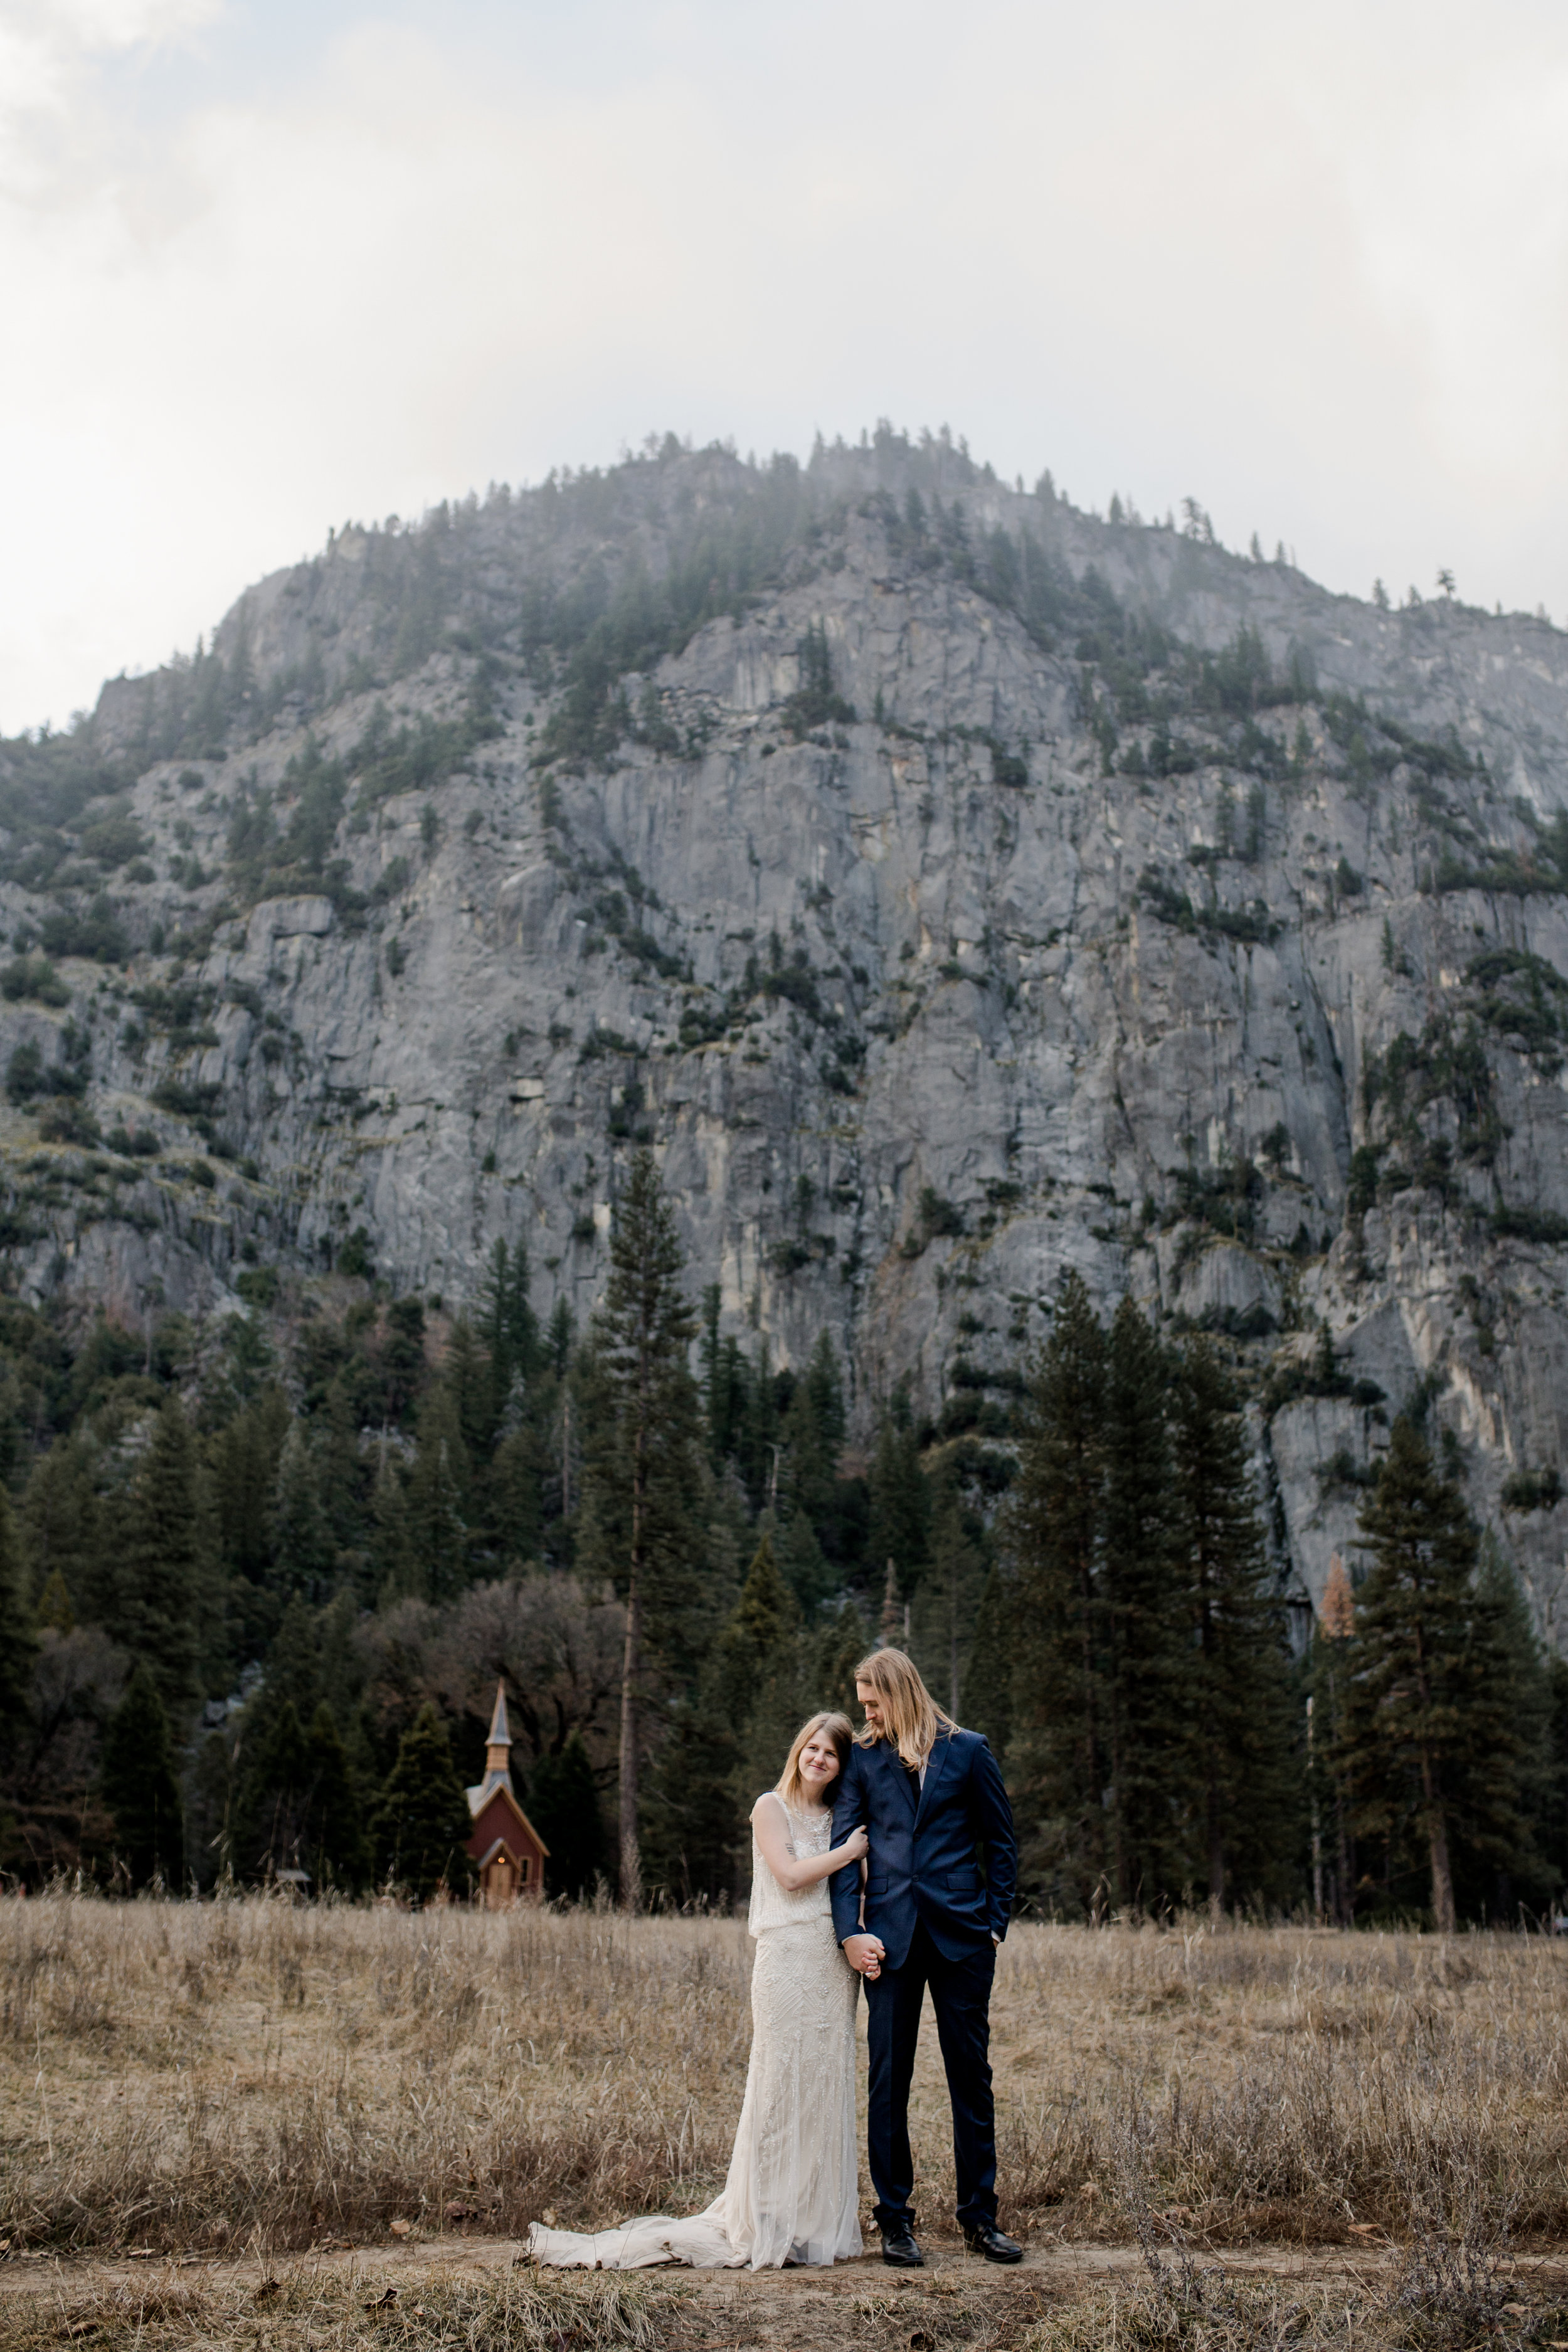 nicole-daacke-photography-yousemite-national-park-elopement-photographer-winter-cloud-moody-elope-inspiration-yosemite-valley-tunnel-view-winter-cloud-fog-weather-wedding-photos-63.jpg